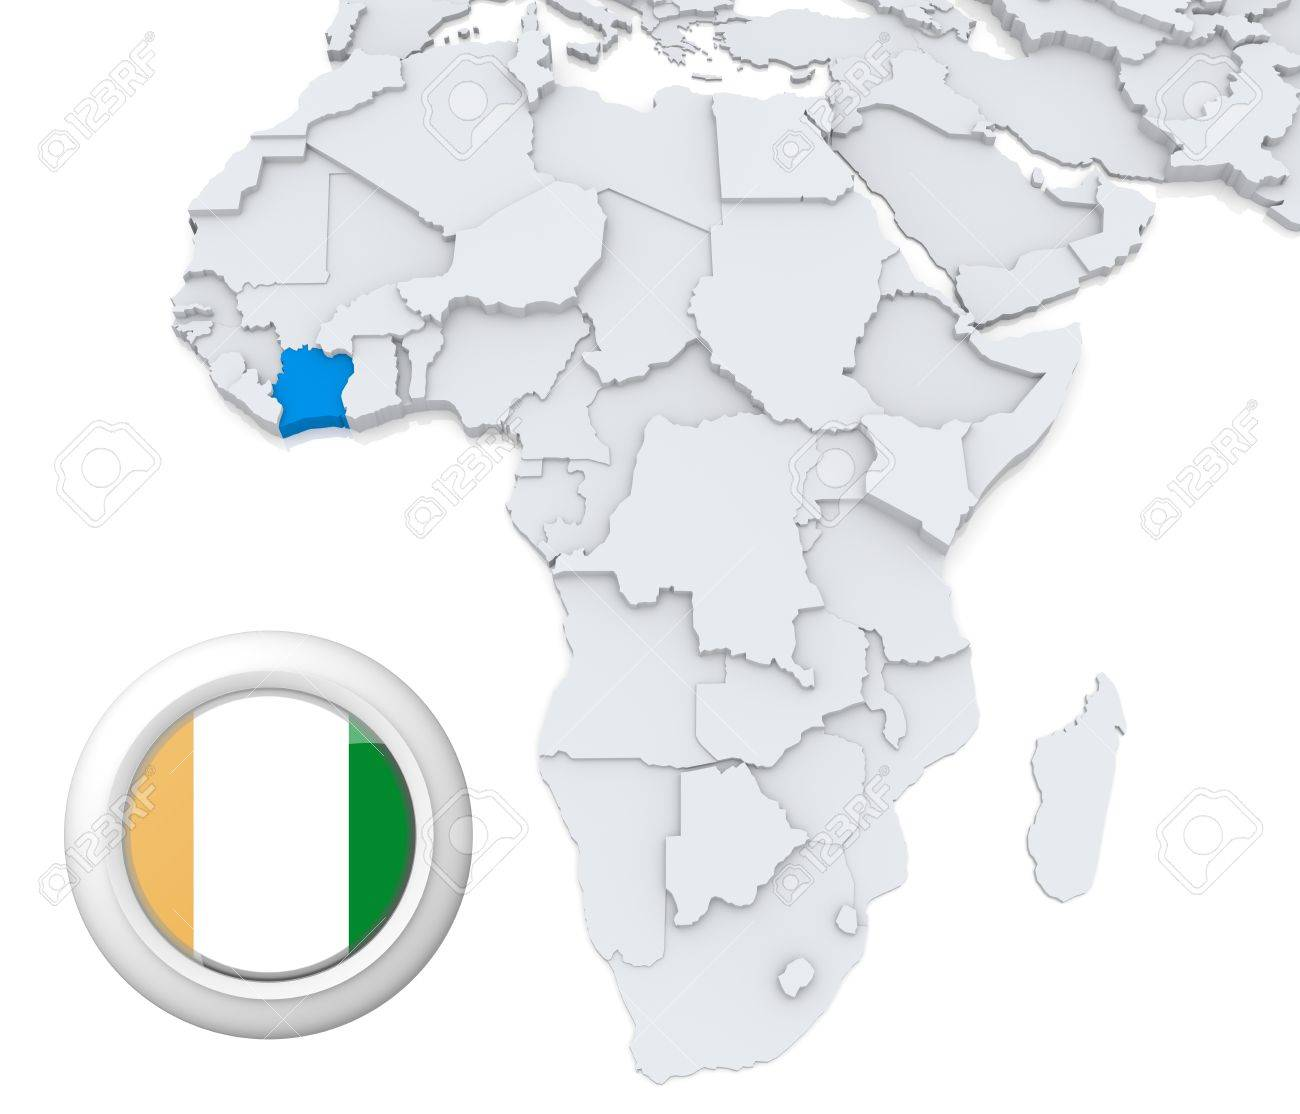 D Modeled Map Of Africa With Highlighted State Of Ivory Coast - Ivory coast map of africa